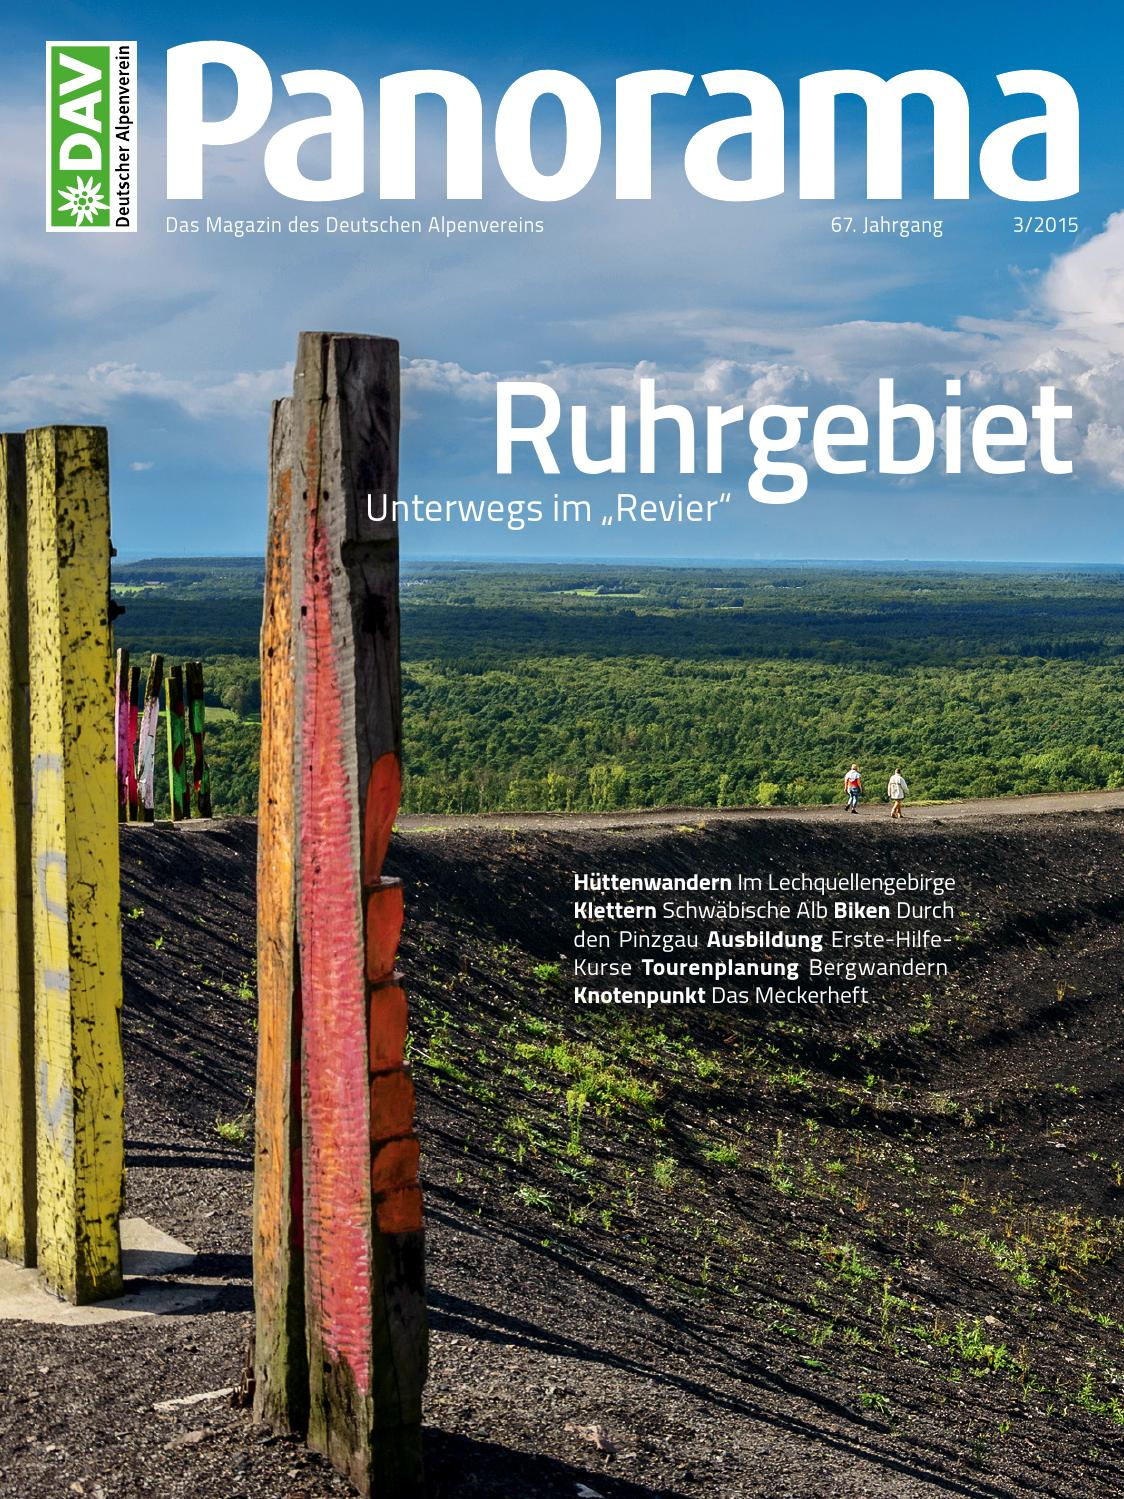 DAV Panorama 3/2015 by Sensit Communication GmbH - issuu